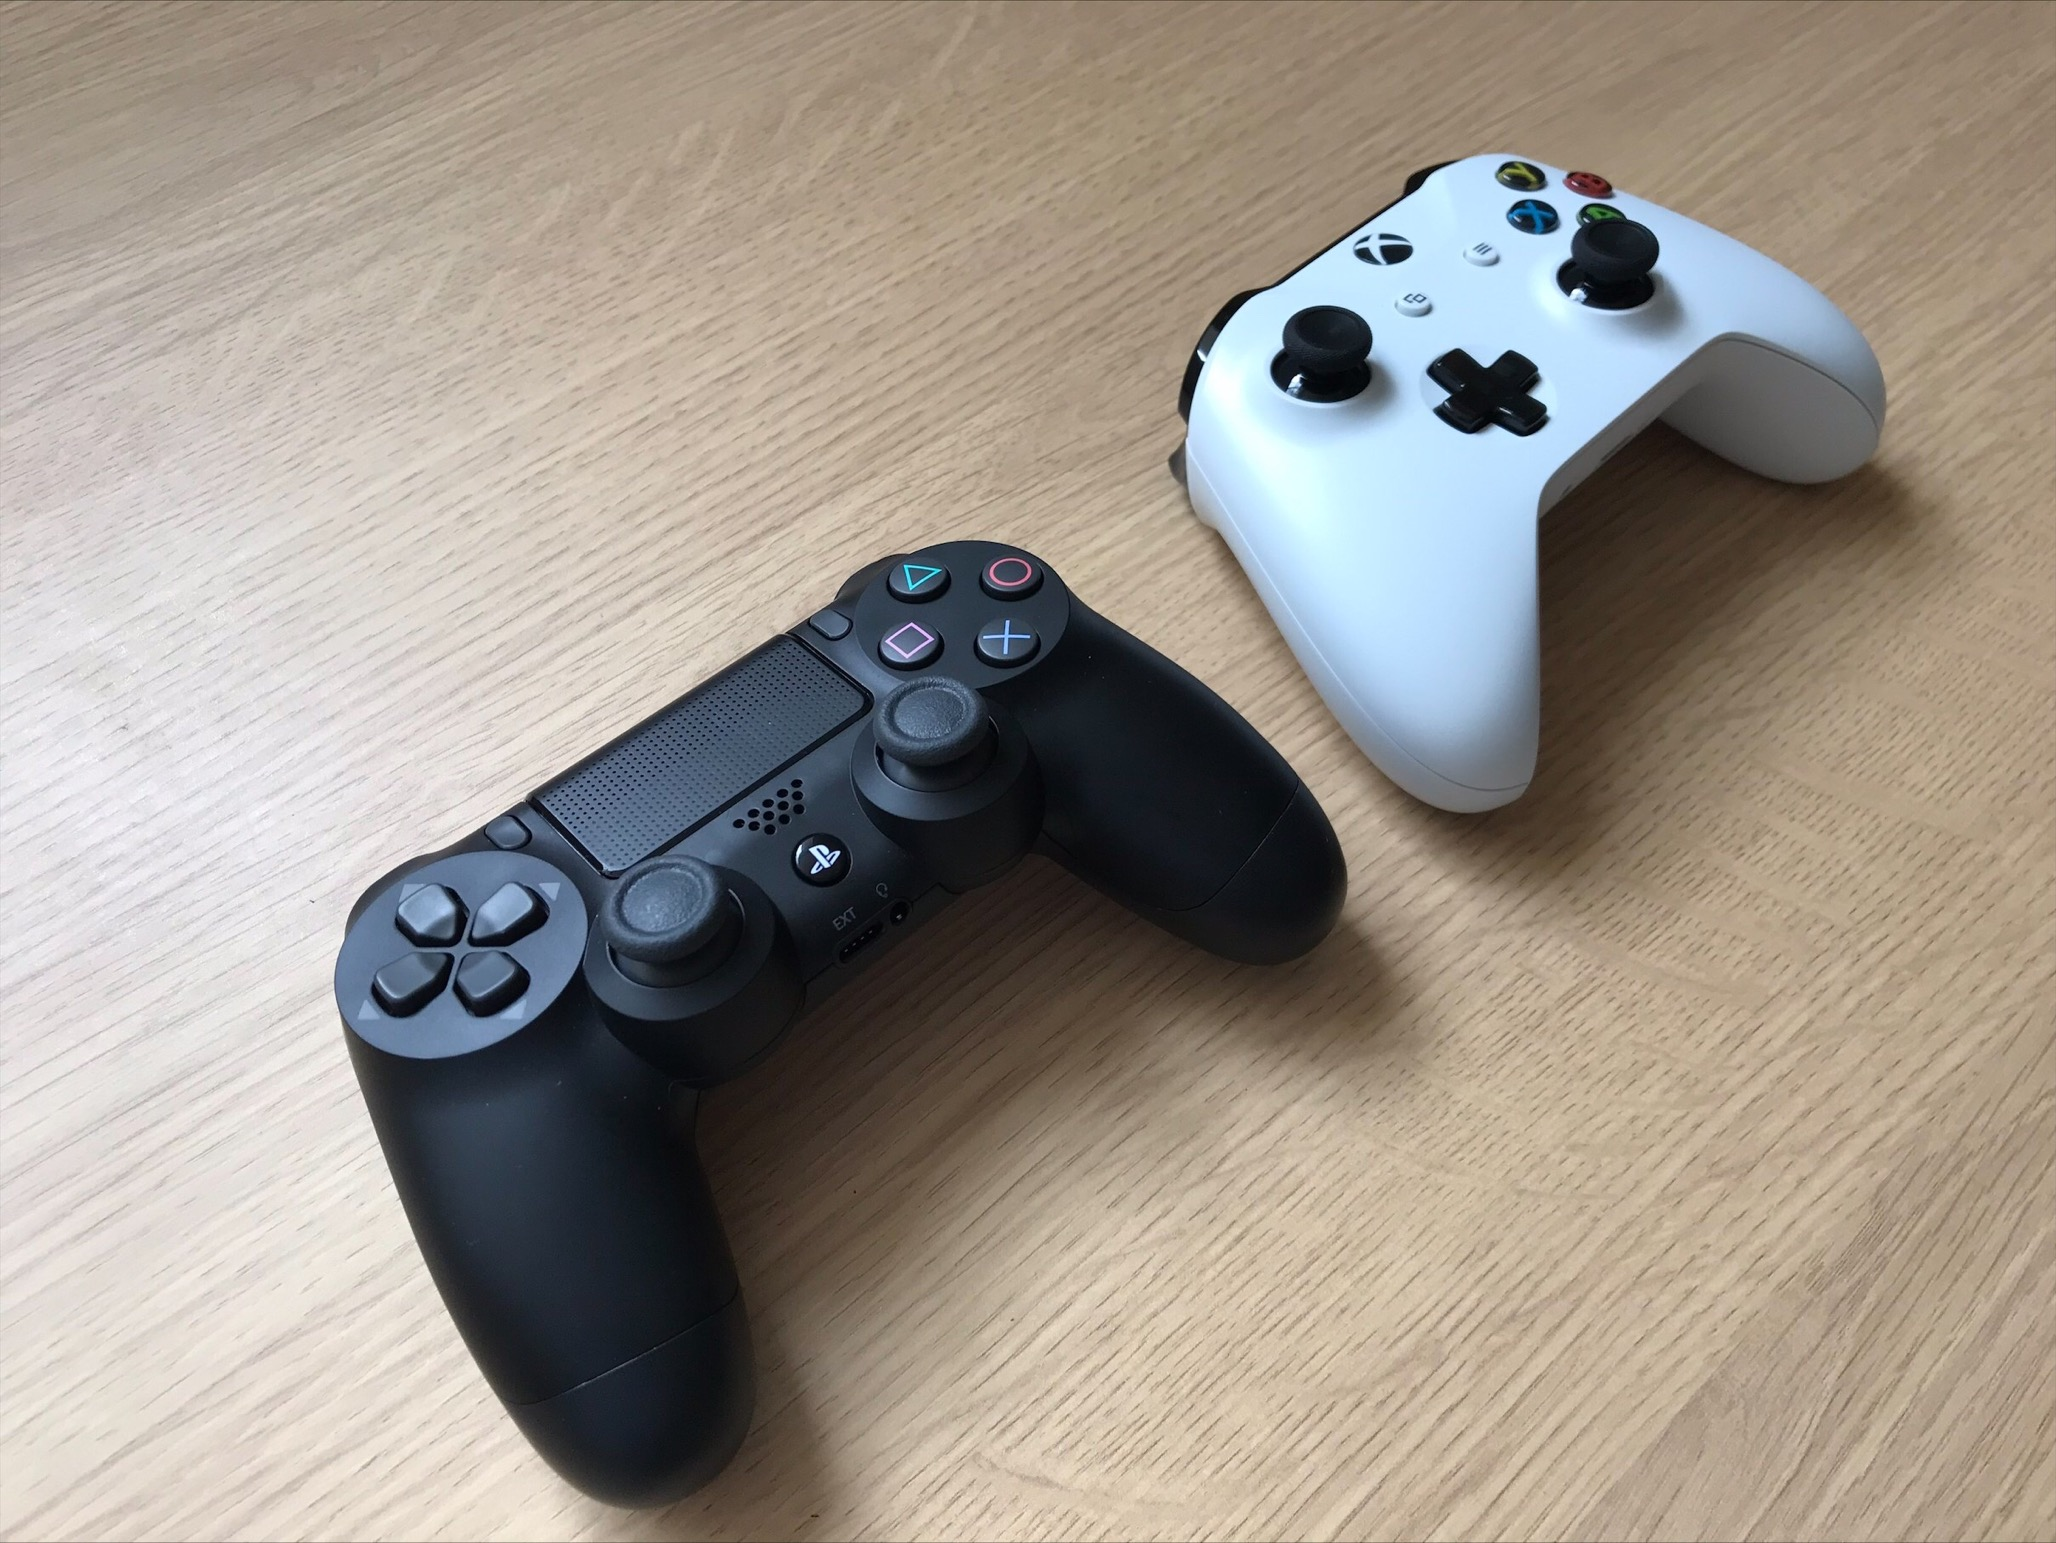 Two low force controllers